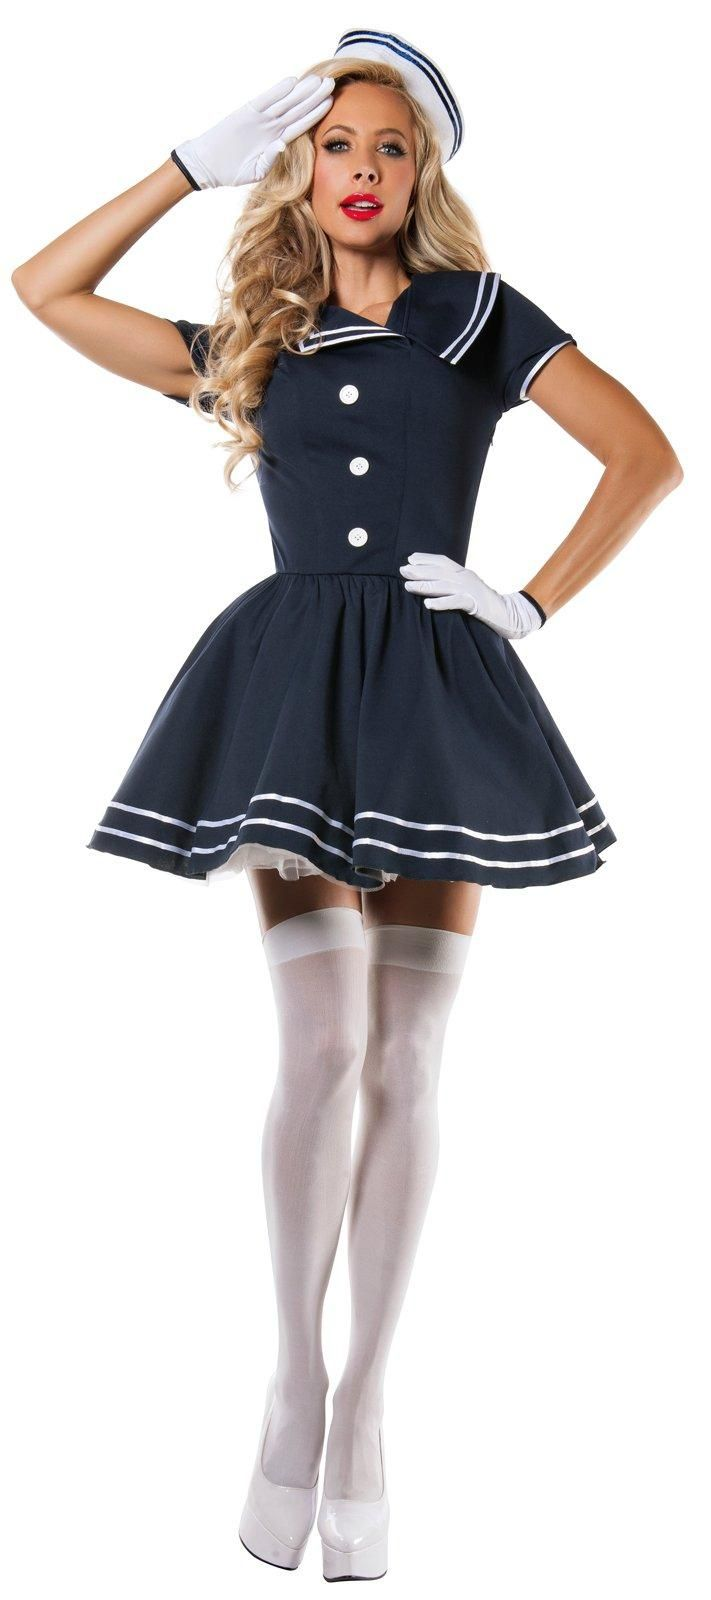 d8a8ed51eabf3 Sailor Captain Costume for Adults from CostumeExpress.com ...